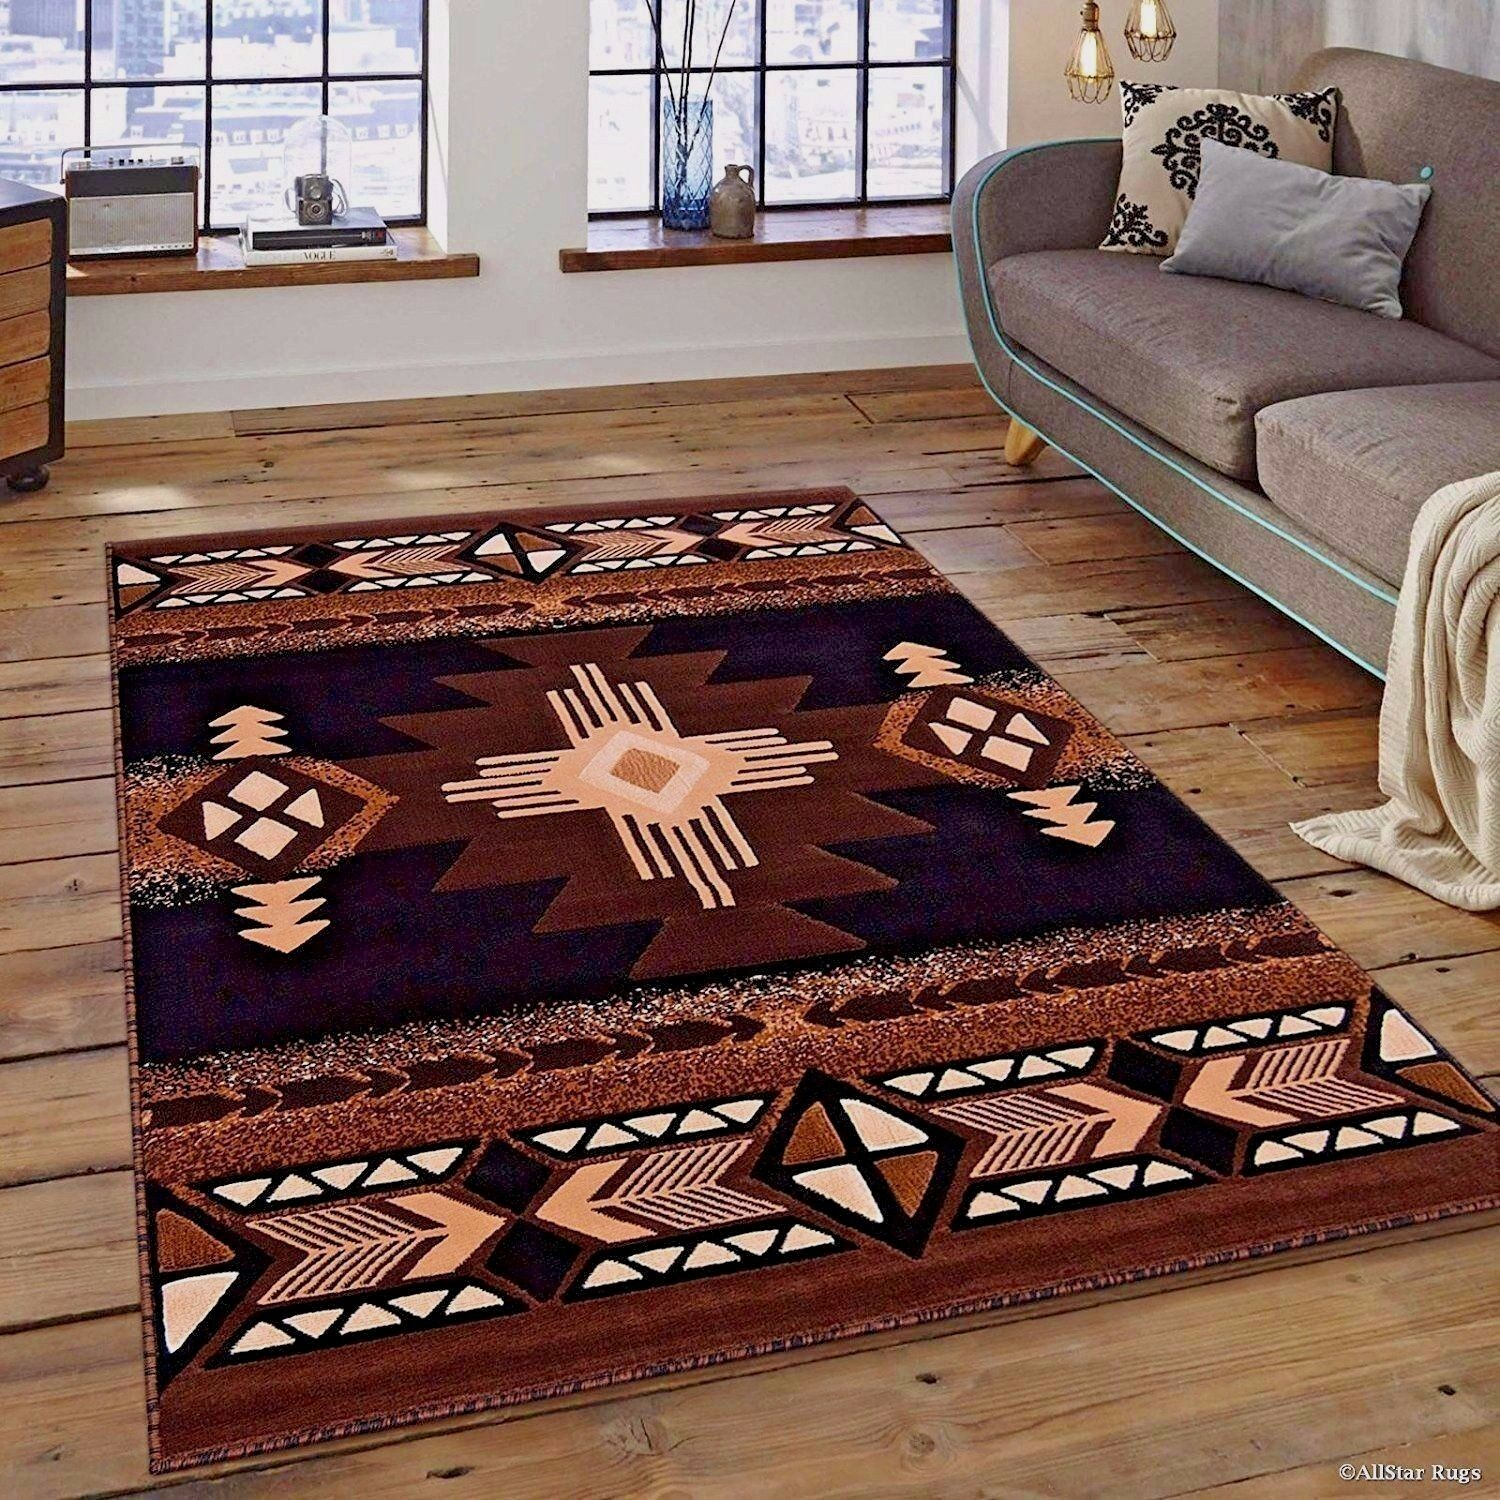 Huge Rugs For Living Room Details About Rugs Area Rugs Carpets 8x10 Rug Floor Modern Large Southwestern Big Brown Rugs